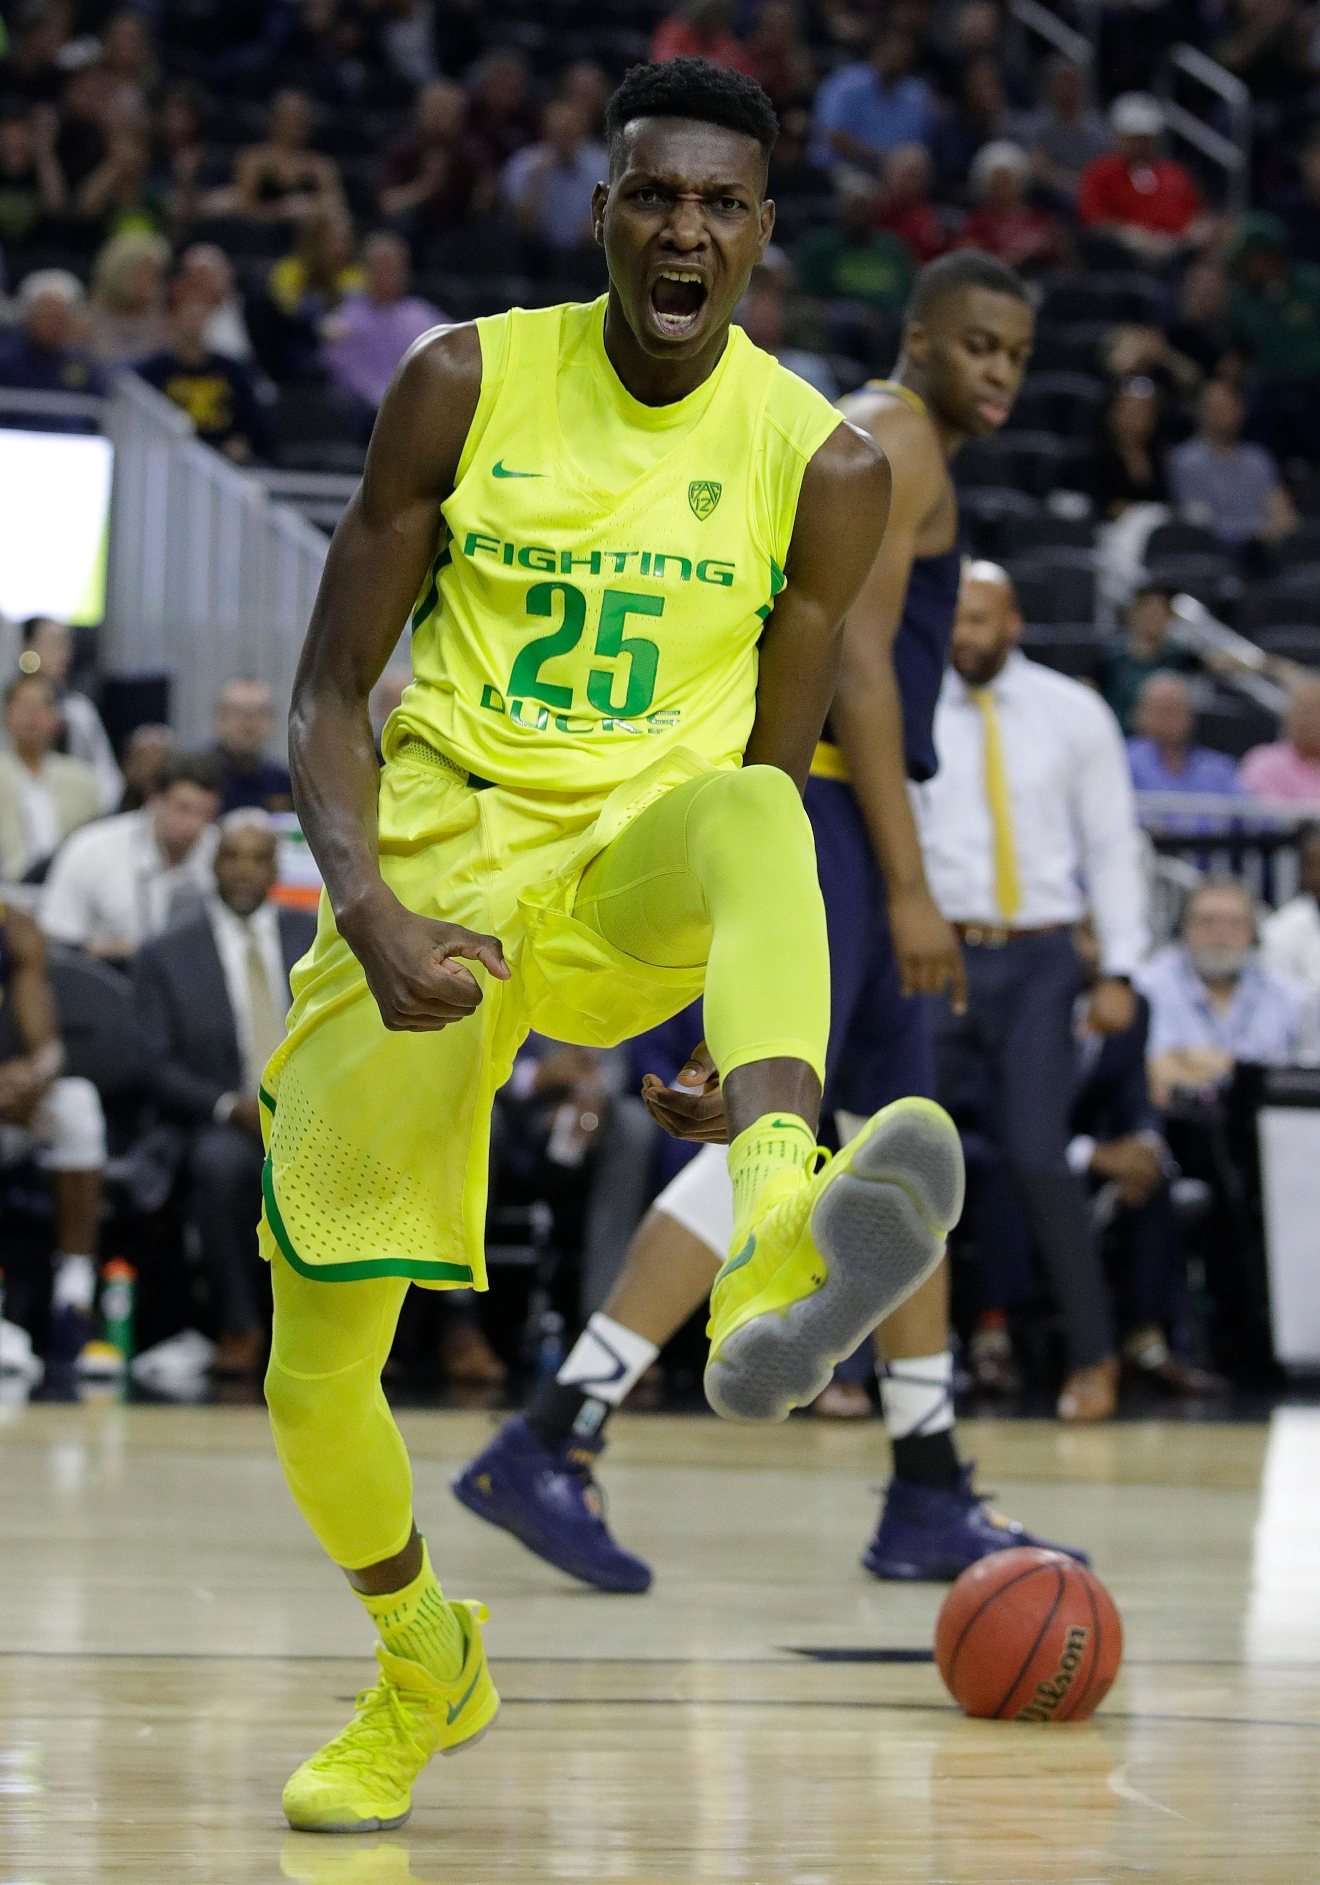 Oregon's Chris Boucher reacts after scoring against California during the first half of an NCAA college basketball game in the semifinals of the Pac-12 tournament Friday, March 10, 2017, in Las Vegas. (AP Photo/John Locher)